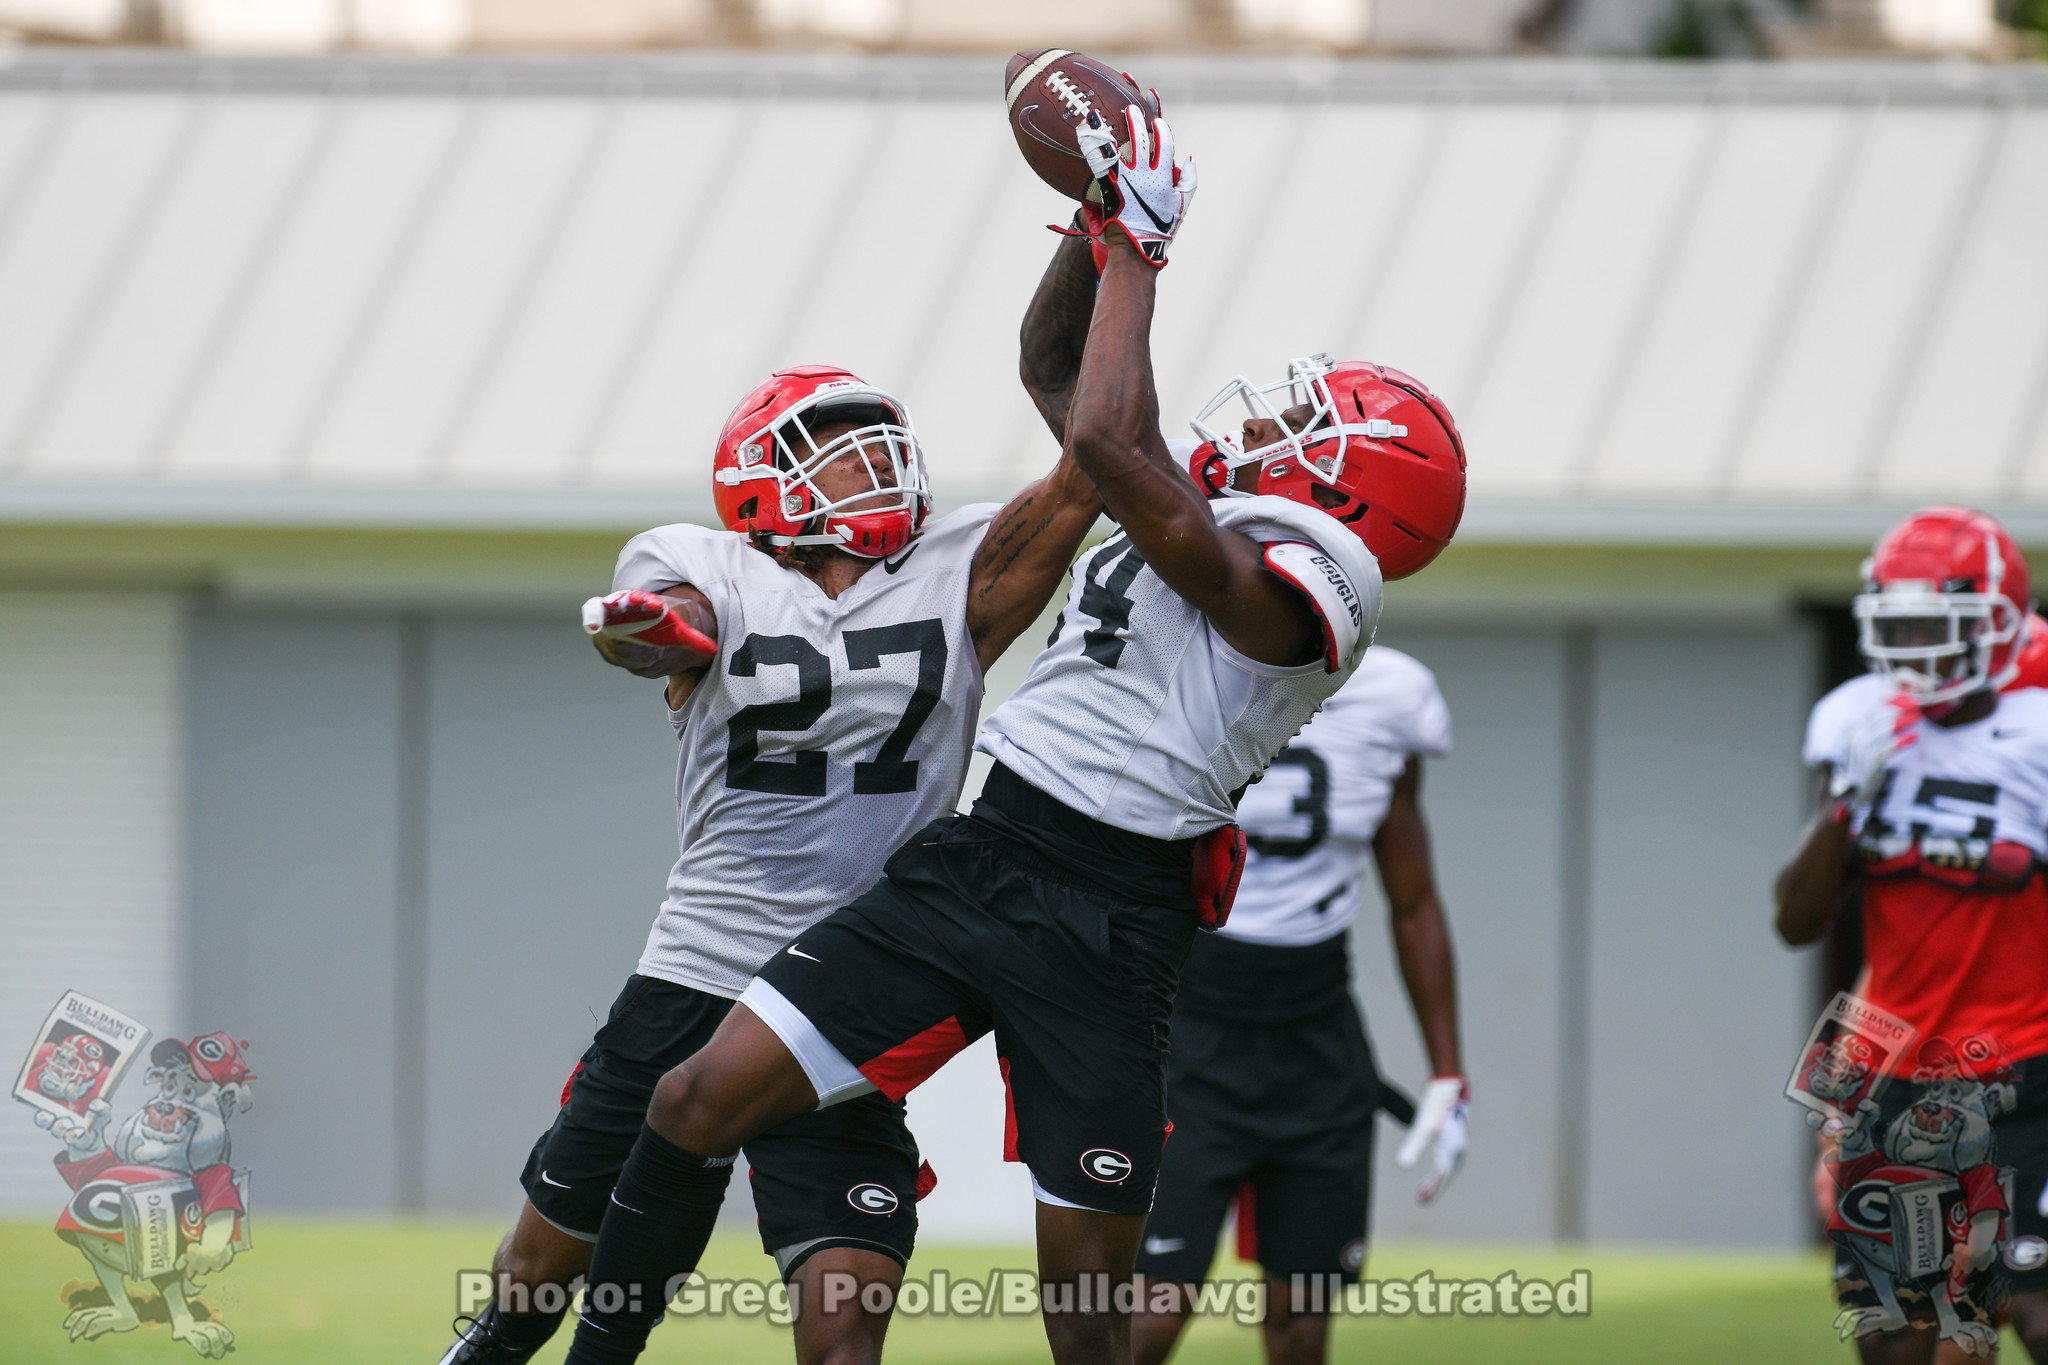 Eric Stokes (27) and Matthew Brown (24) participate in tip drills during practice.